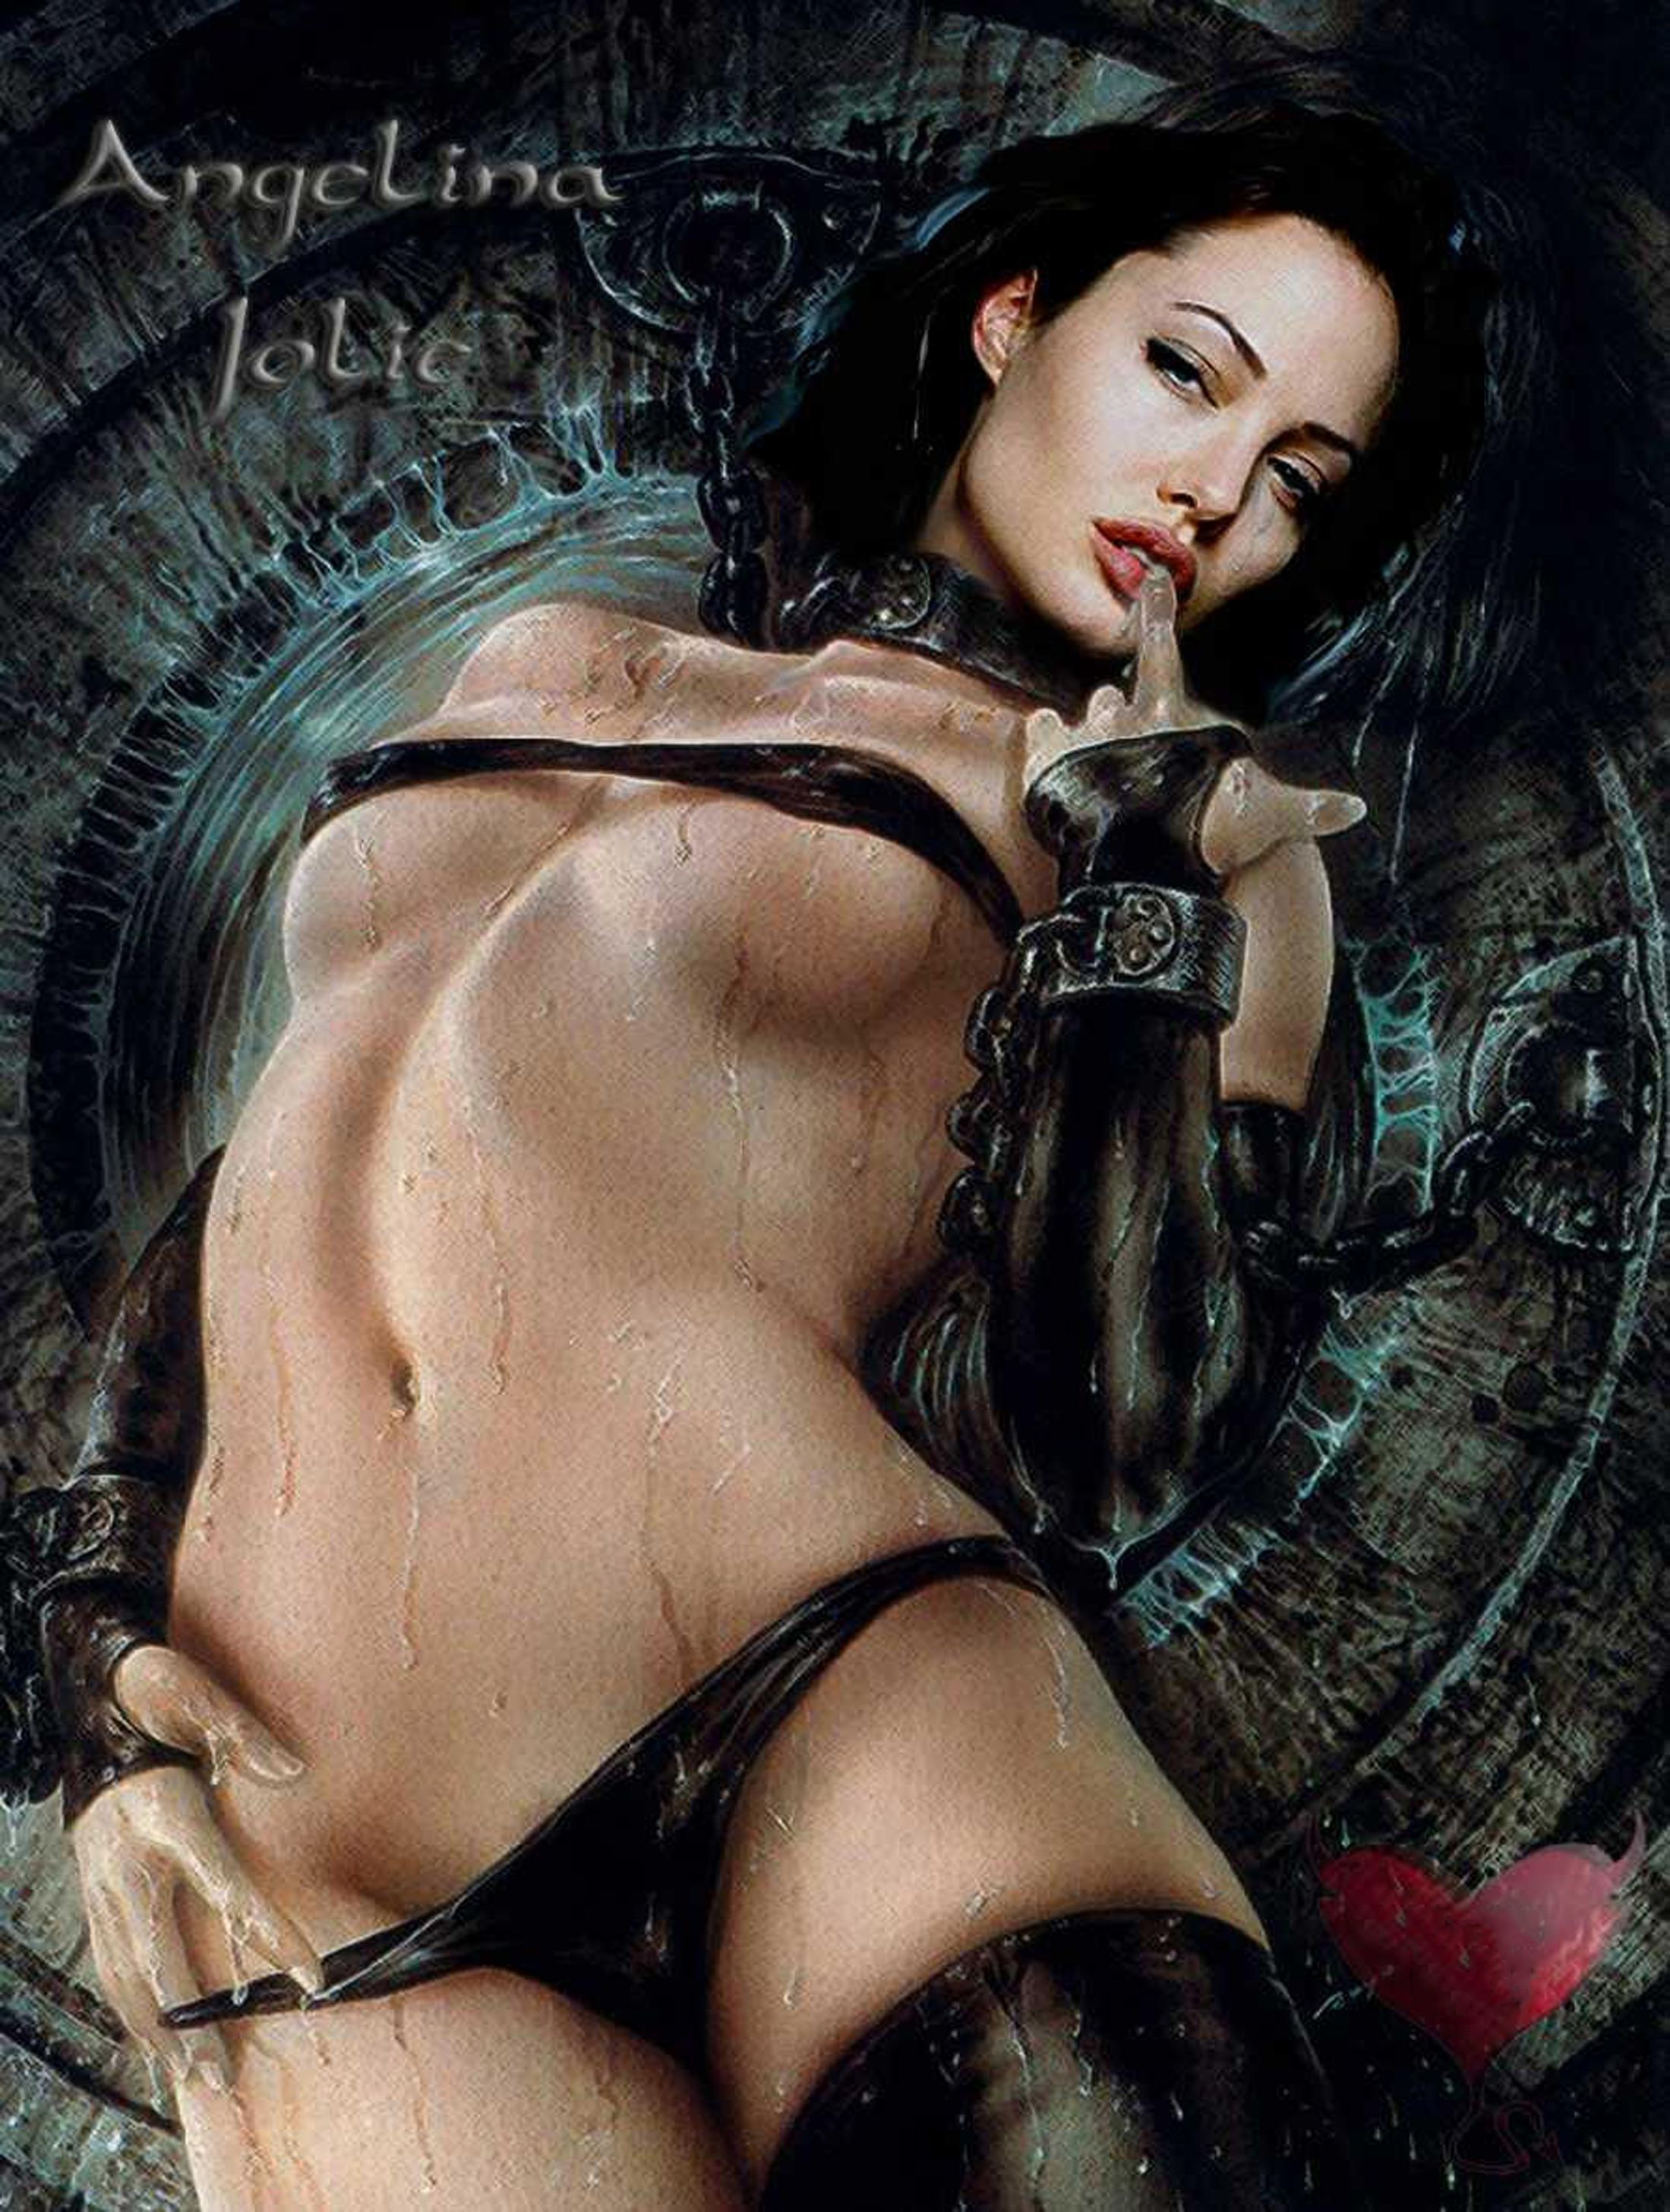 Angelina Jolie Erotic Photo